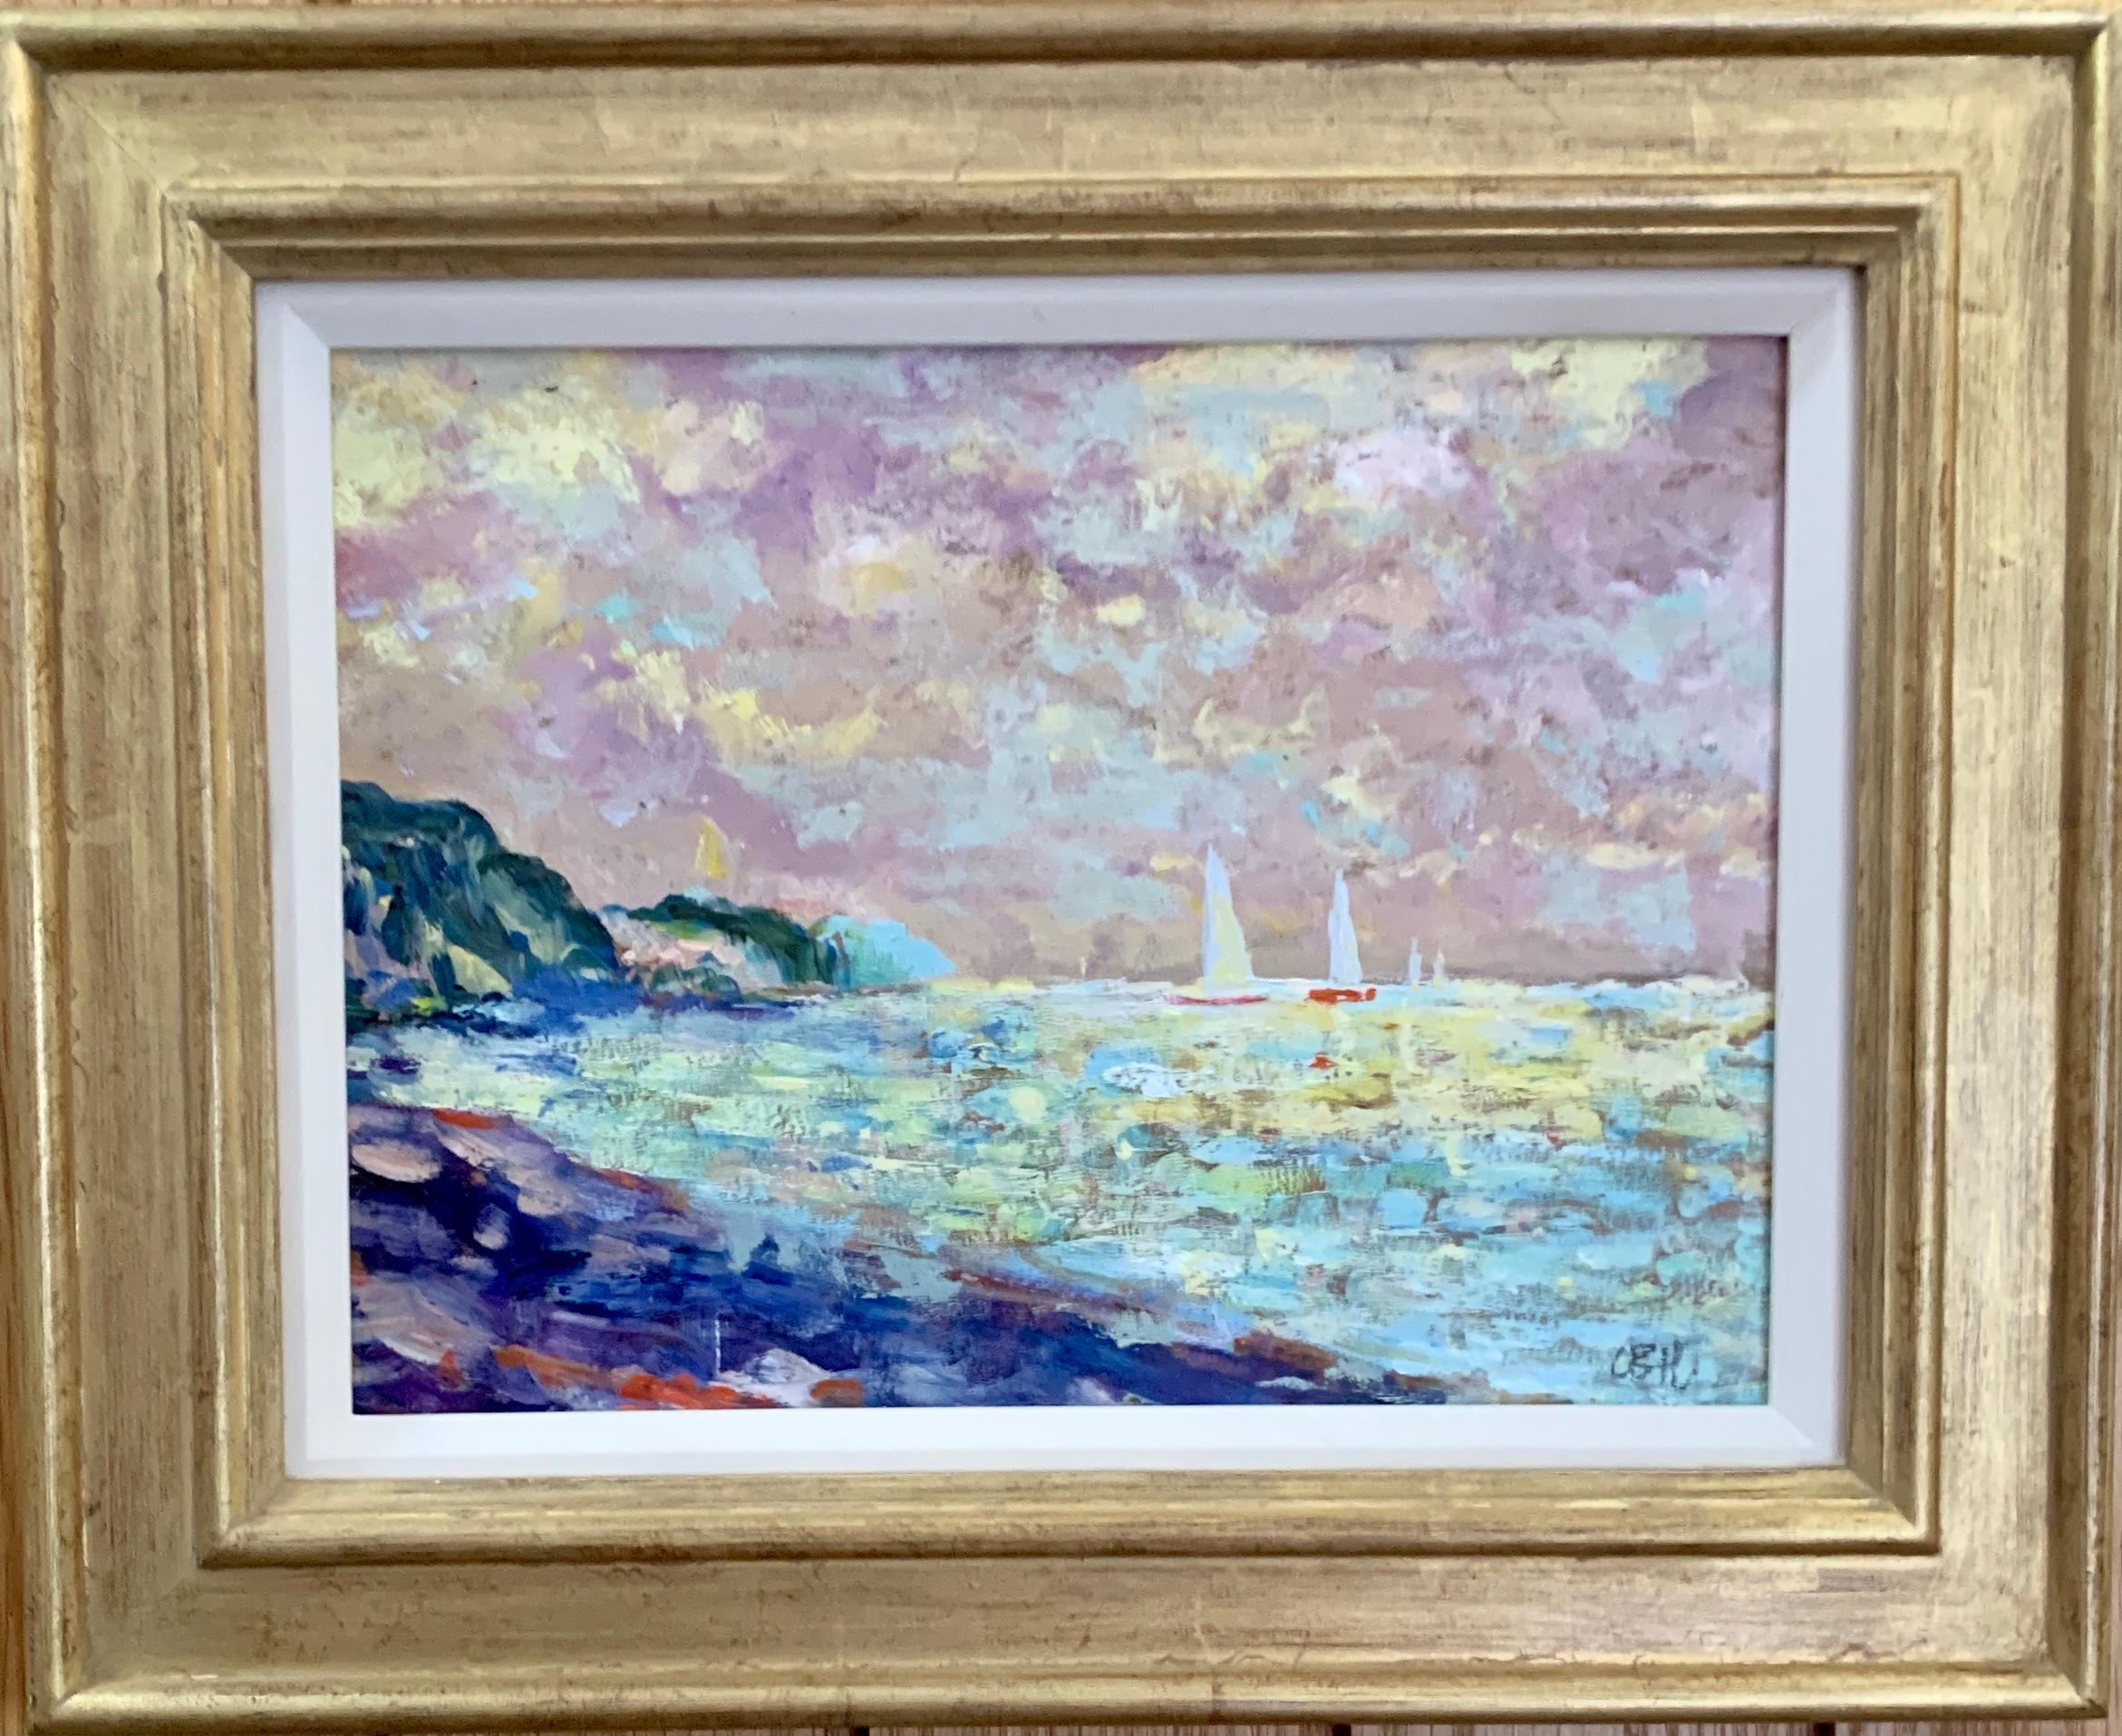 Impressionist Late 20th century seascape, a French coastal scene with yachts